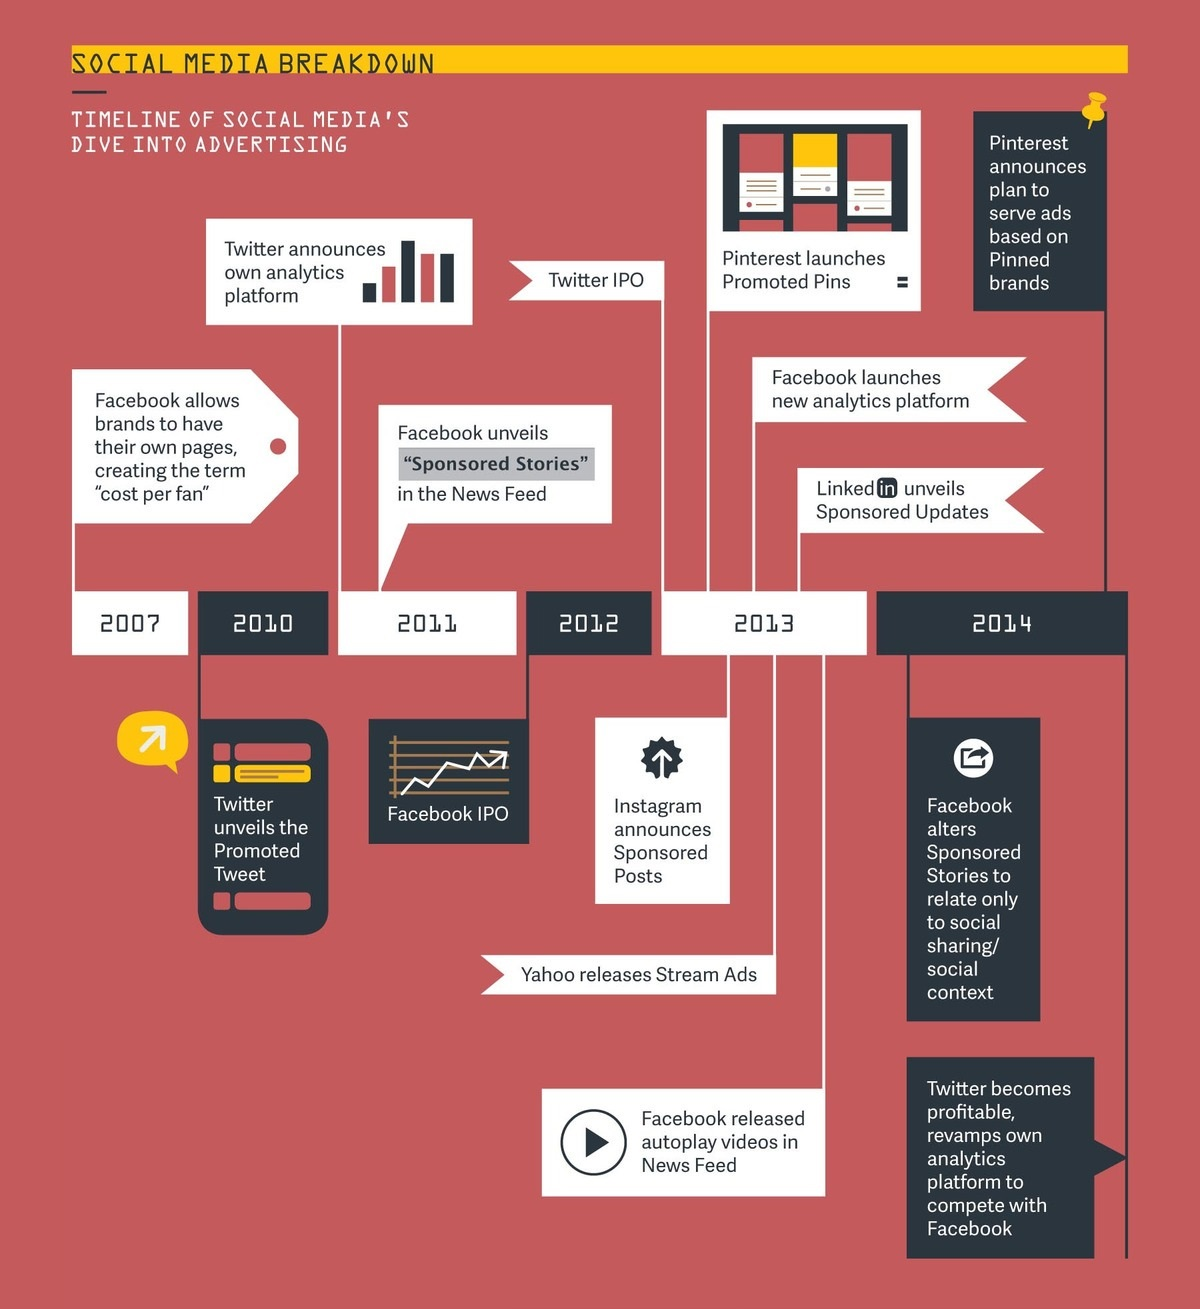 Timeline of Social Media's Dive into Advertising